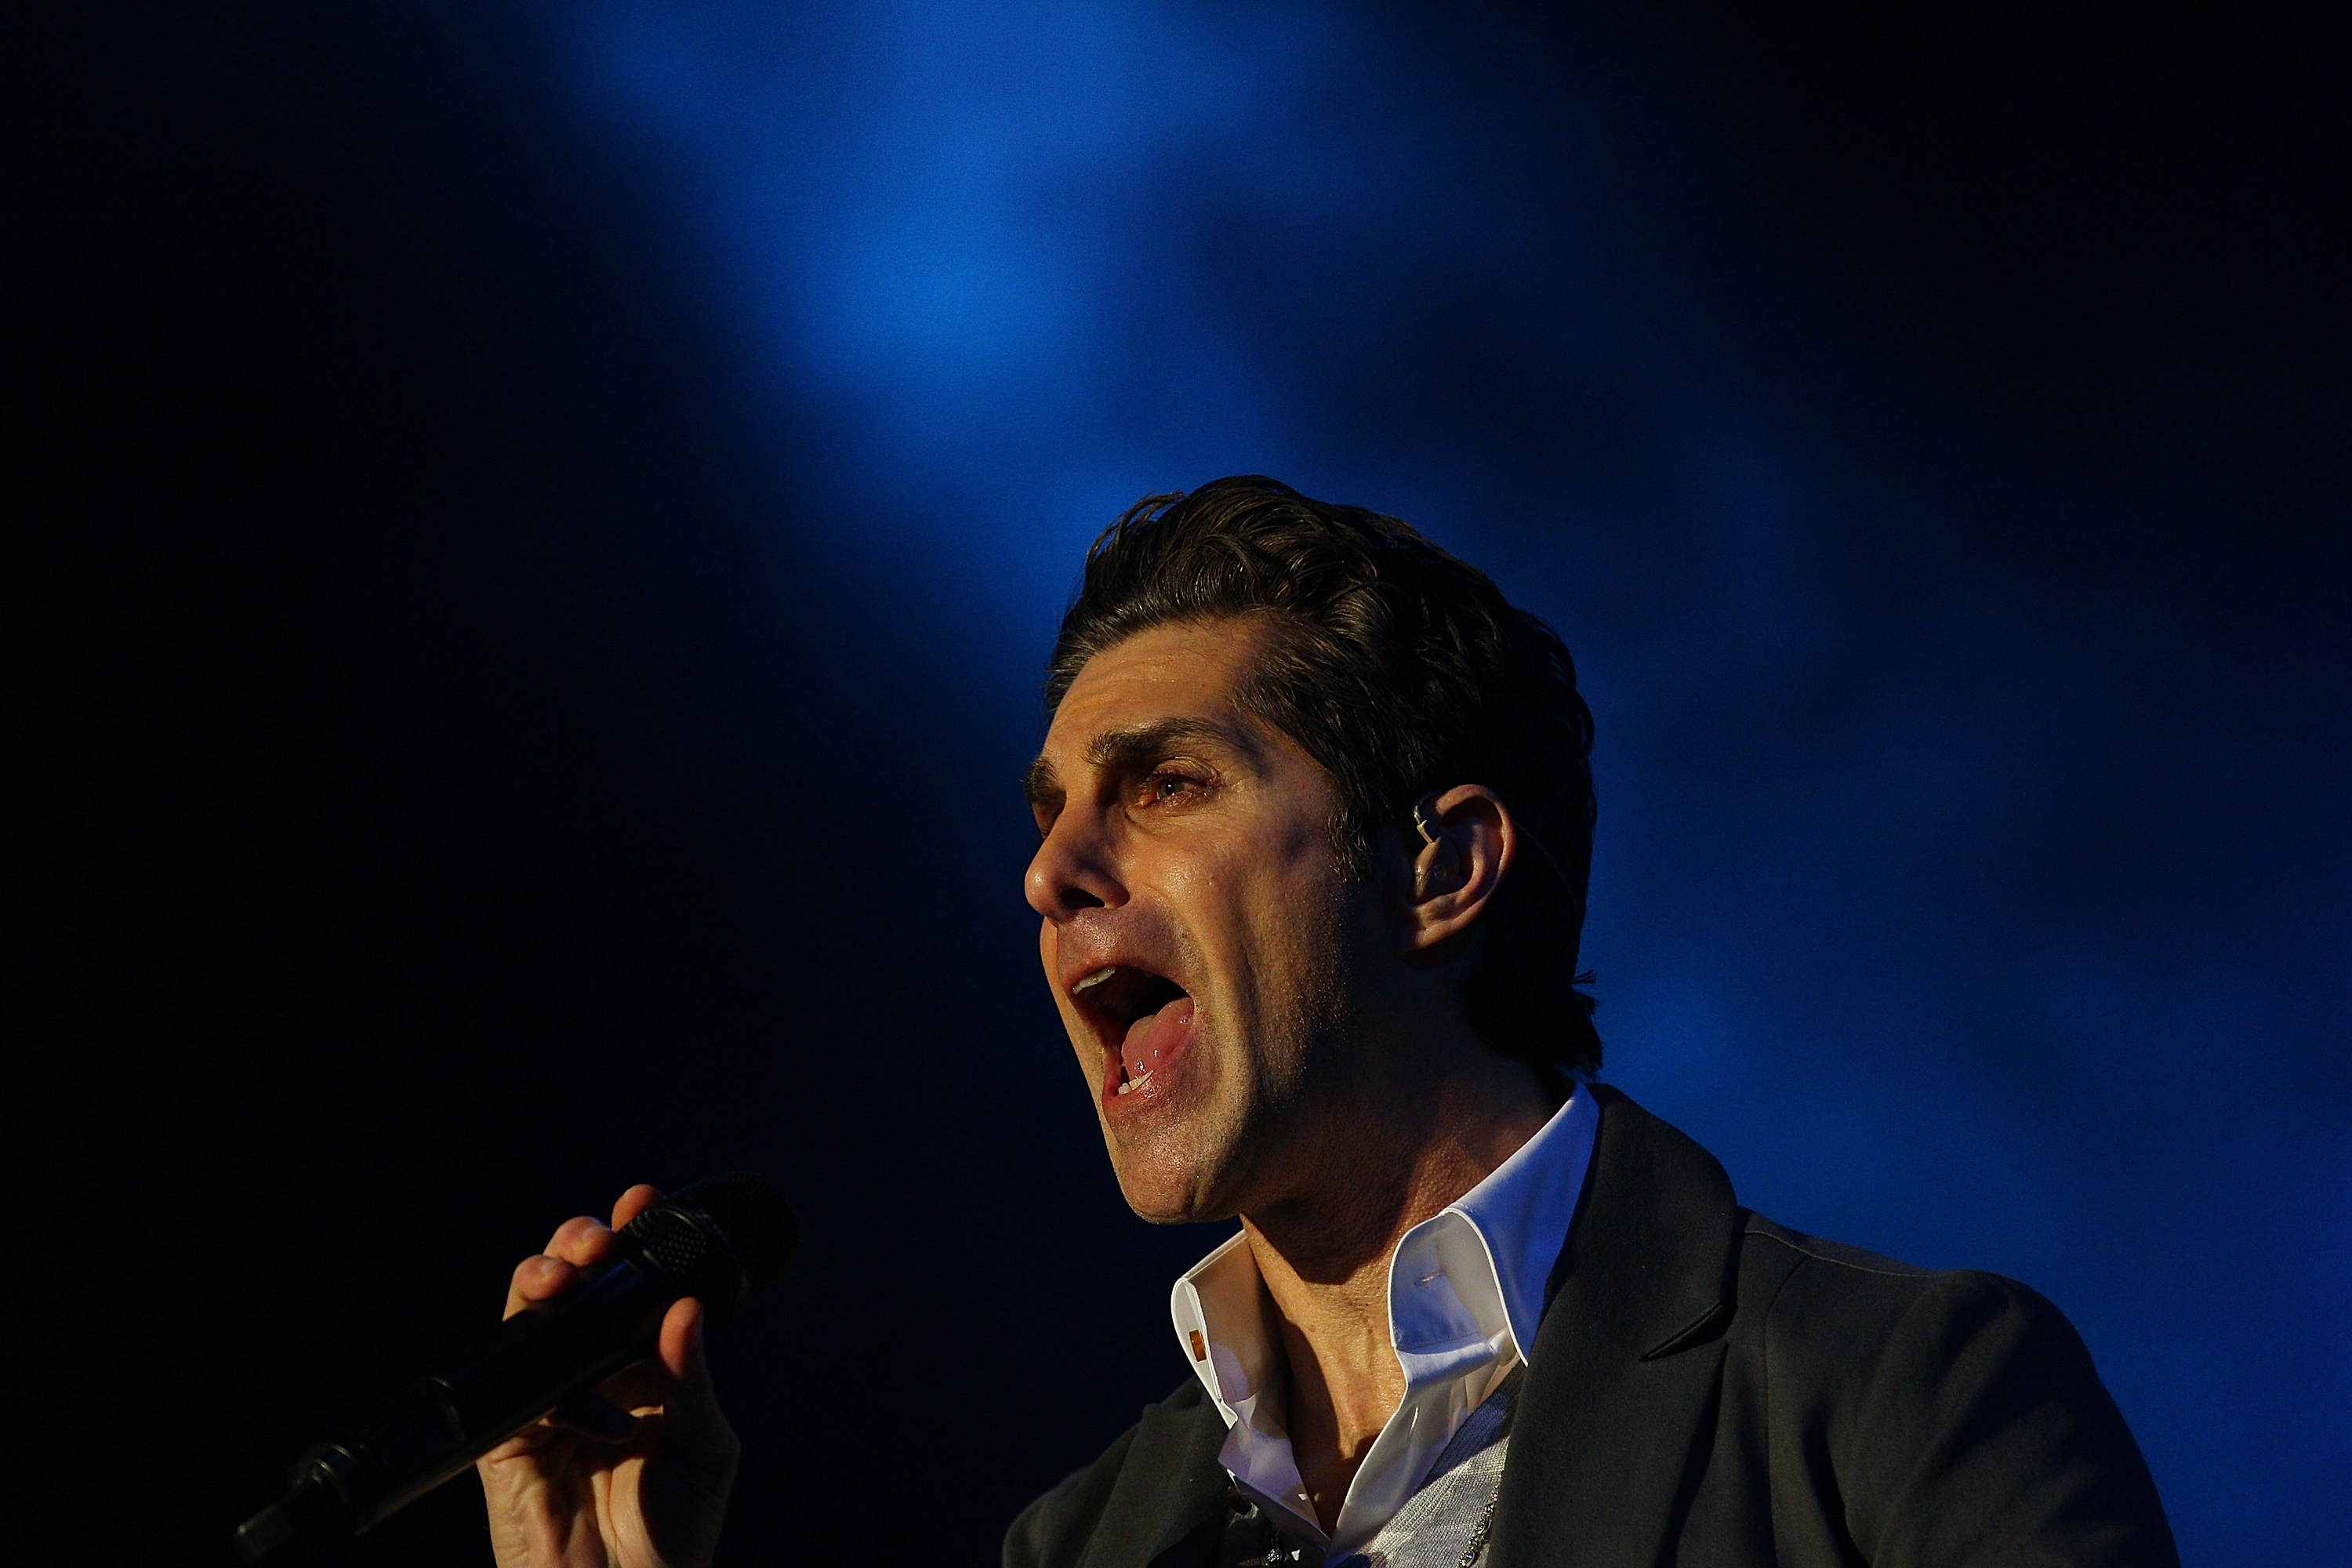 Jane's Addiction @ Splendour In The Grass 2011